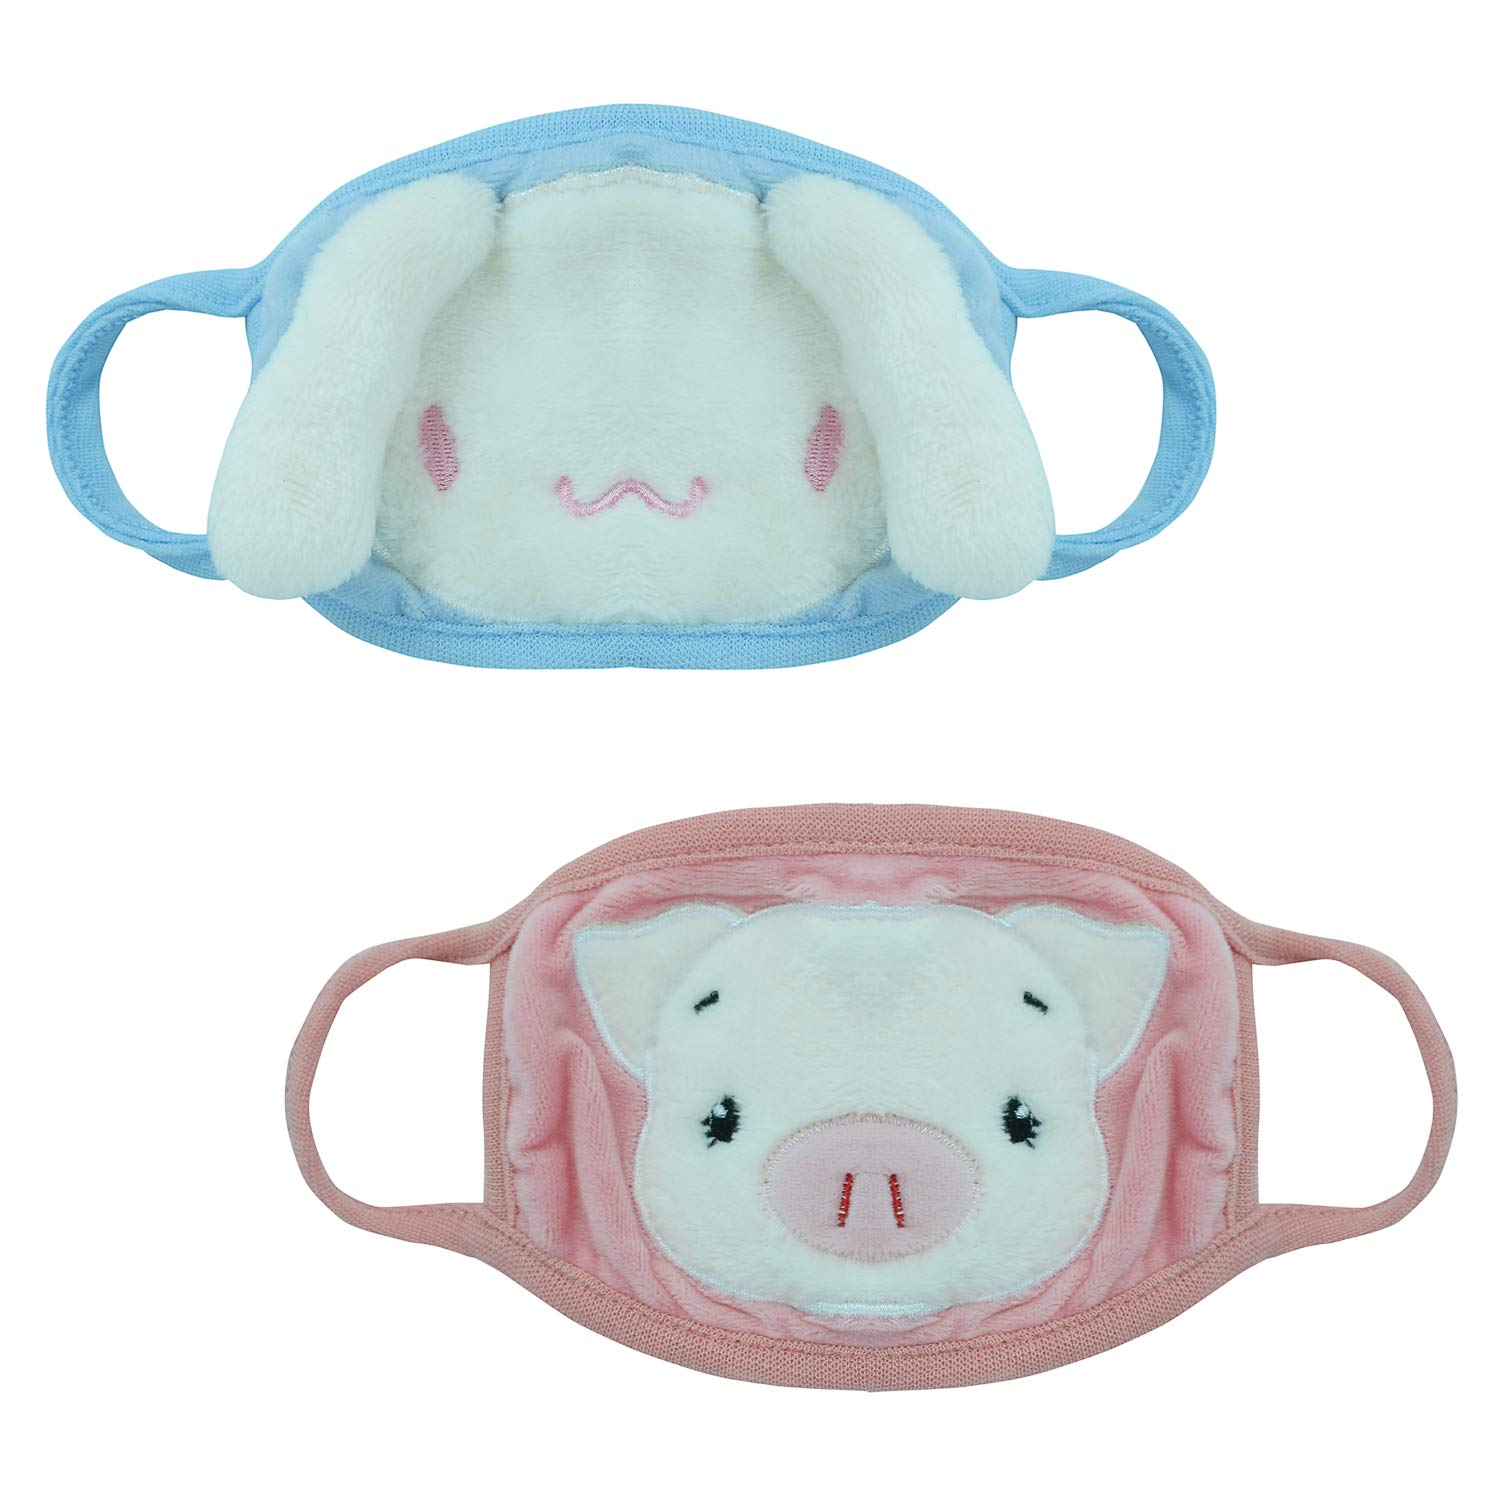 Xelue FF 2 Pack Cute Cartoon Dog and Pig Comfort Anti Dust Windproof Warm Masks for Kids and Cospaly